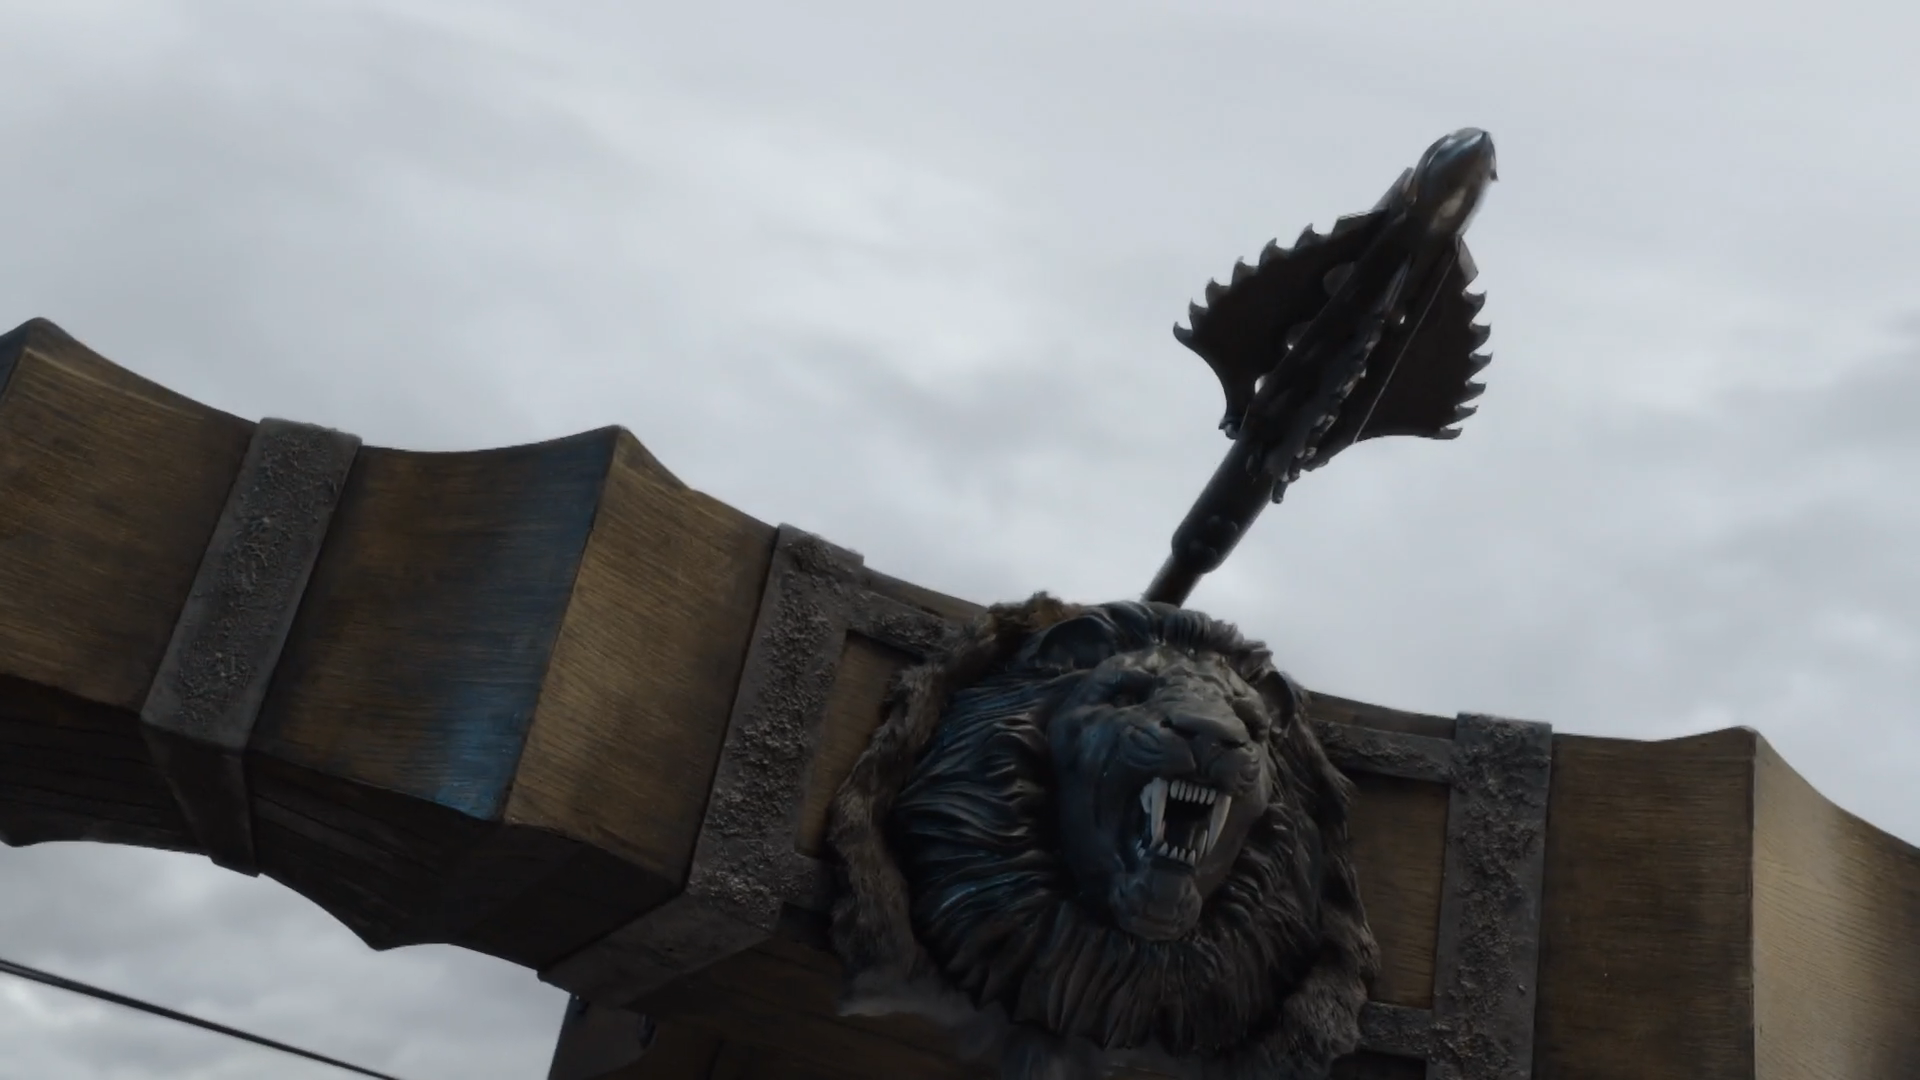 Game of Thrones Ballista The Bells